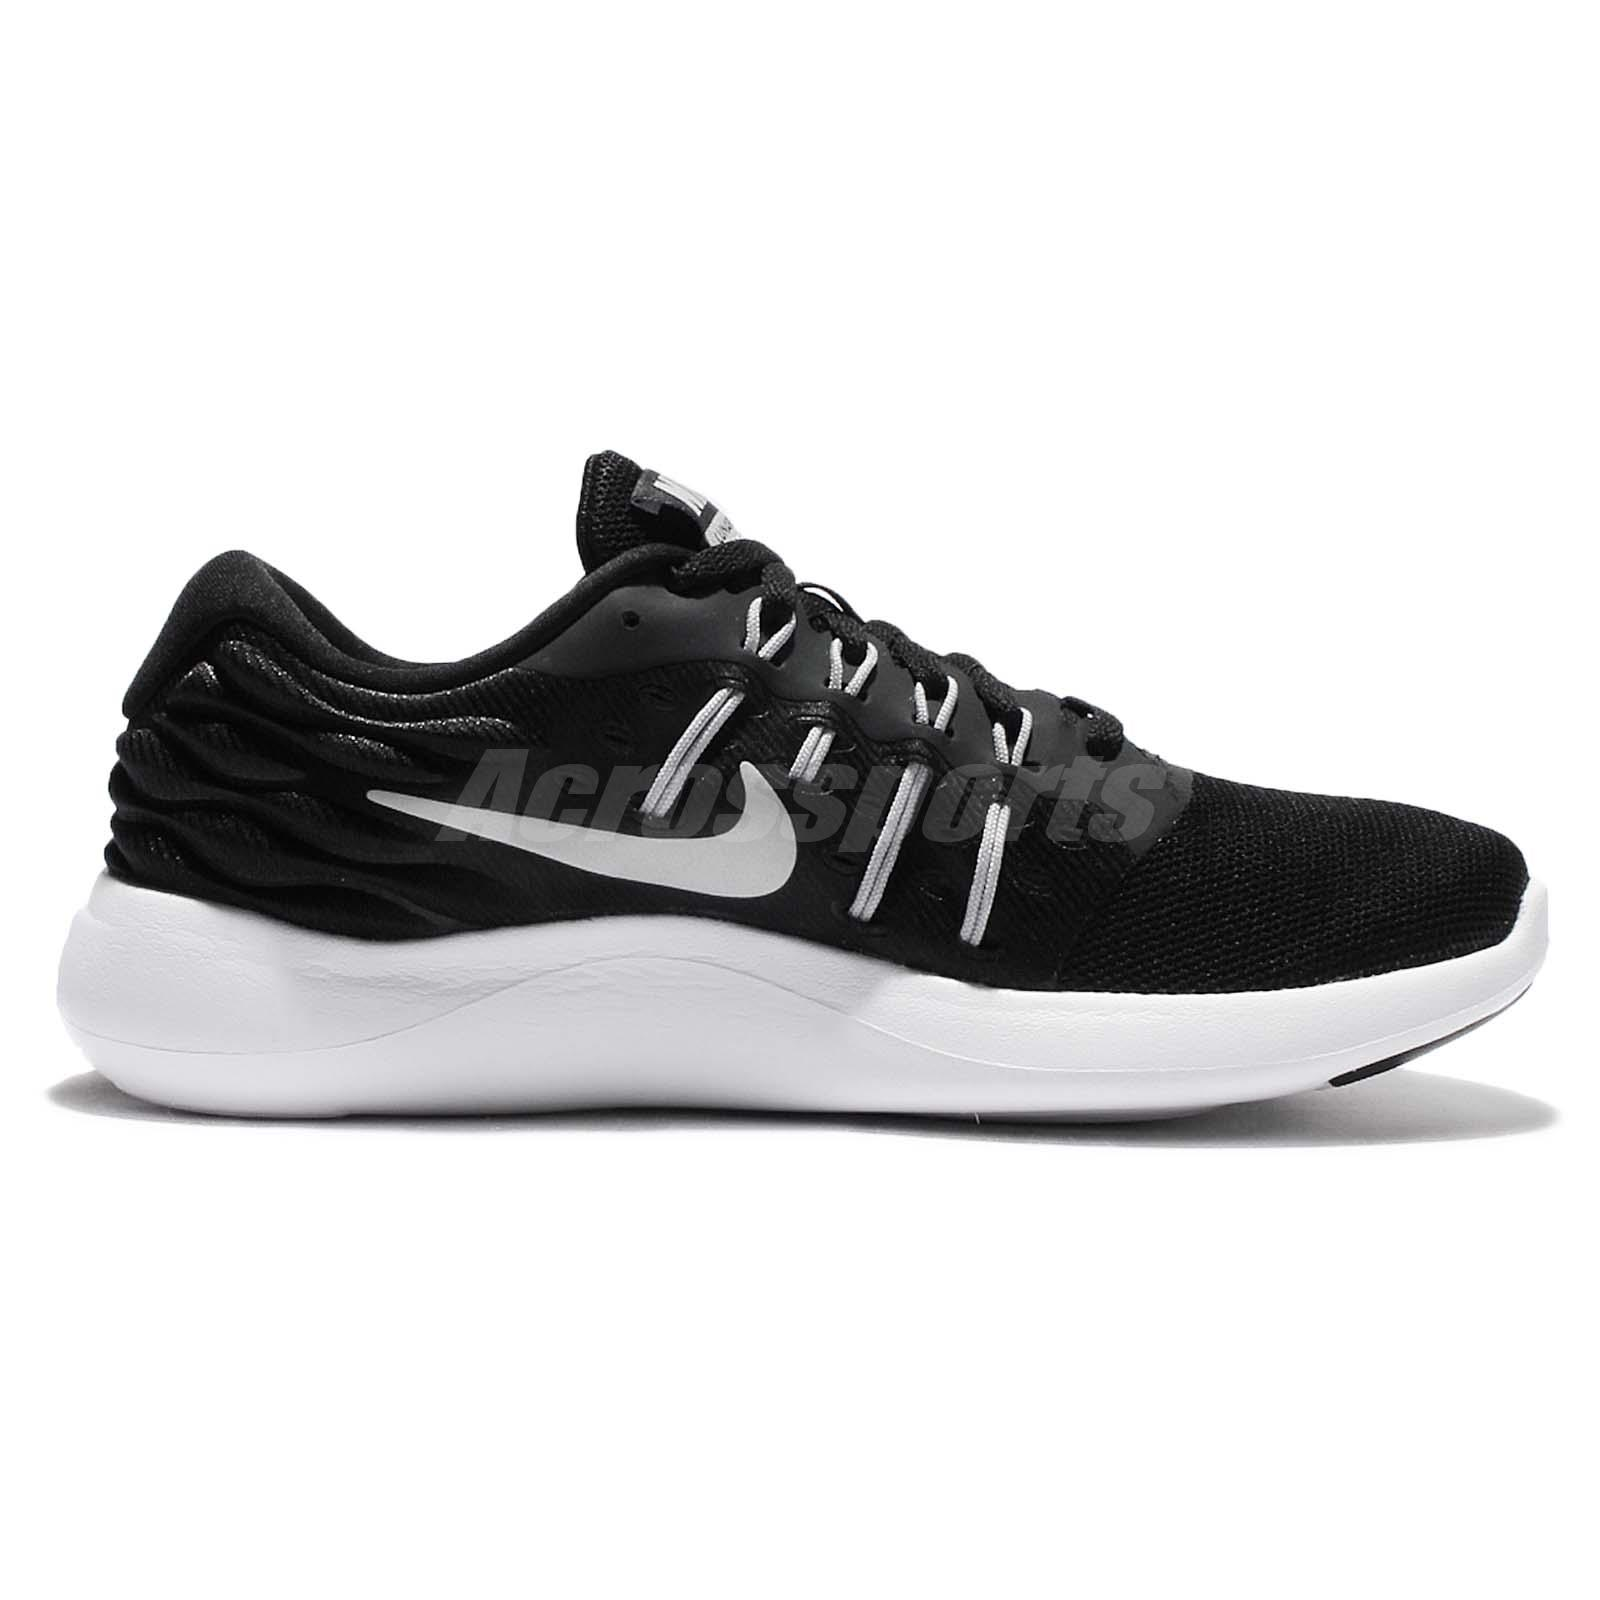 a0ada4fb1038 Condition Brand New With Box Buy Nike Lunarstelos Black Running ...